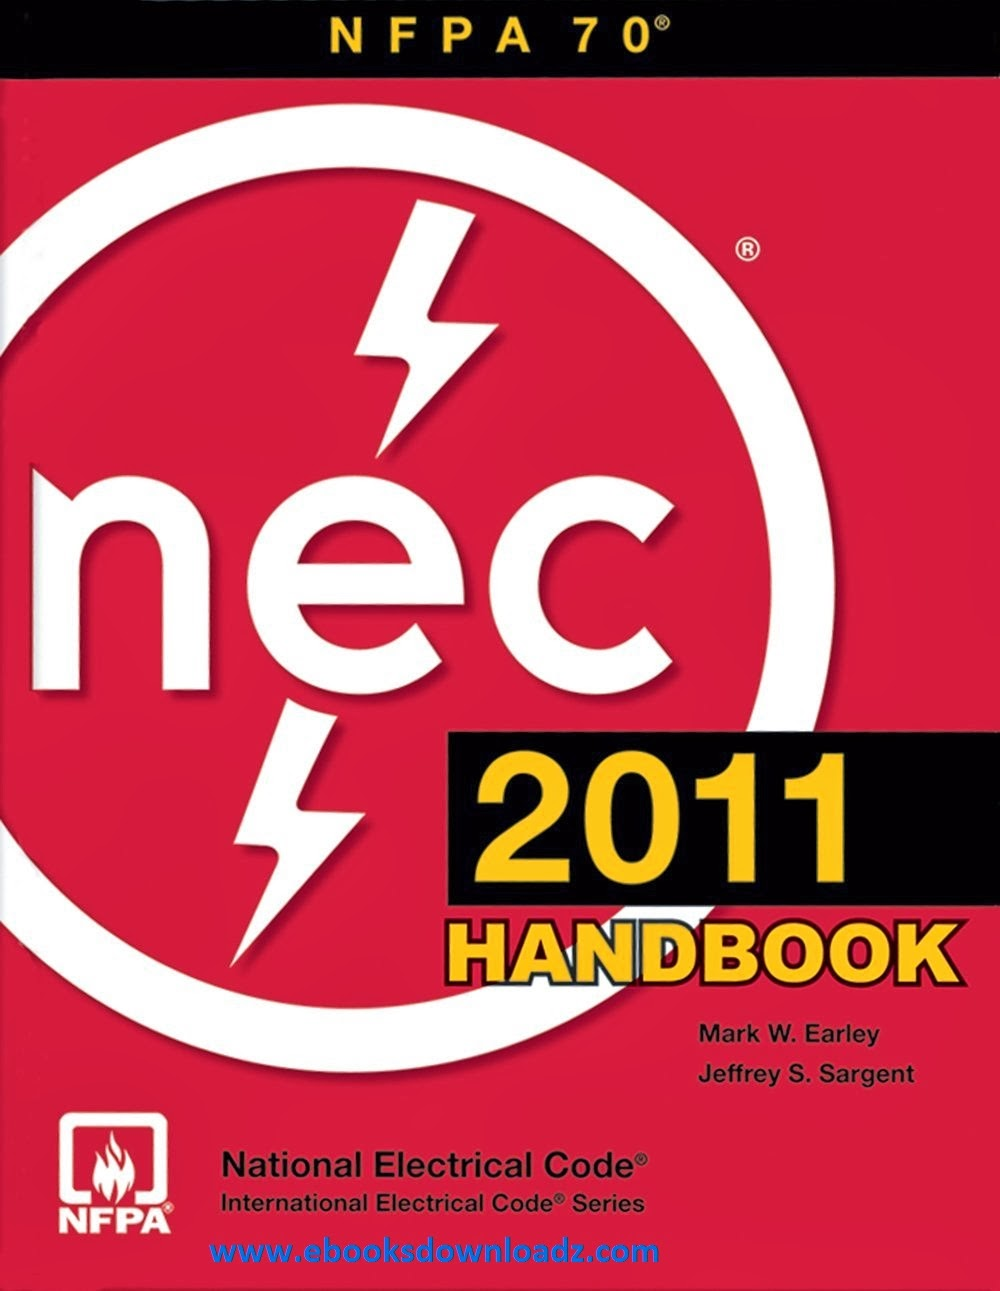 National Electrical Code : National electrical code handbook th edition